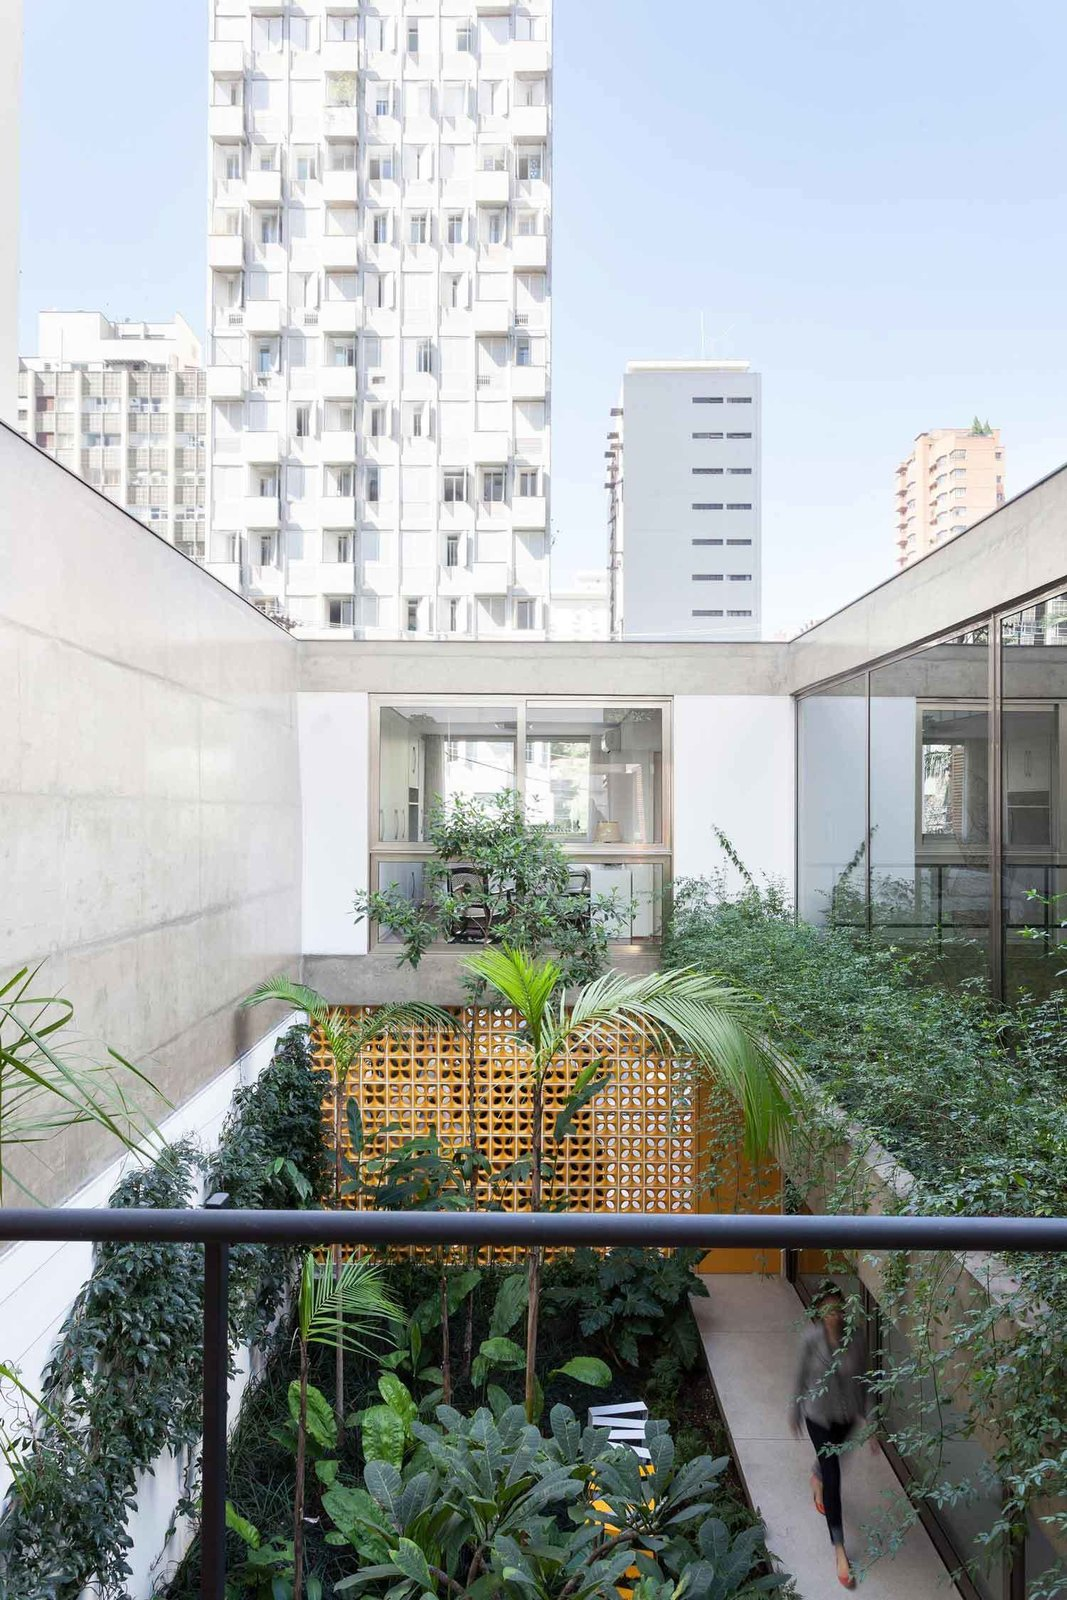 Outdoor and Garden Jardins House by CR2 Arquitetura  Photo 1 of 10 in How to Bring Light Into Dark Spaces